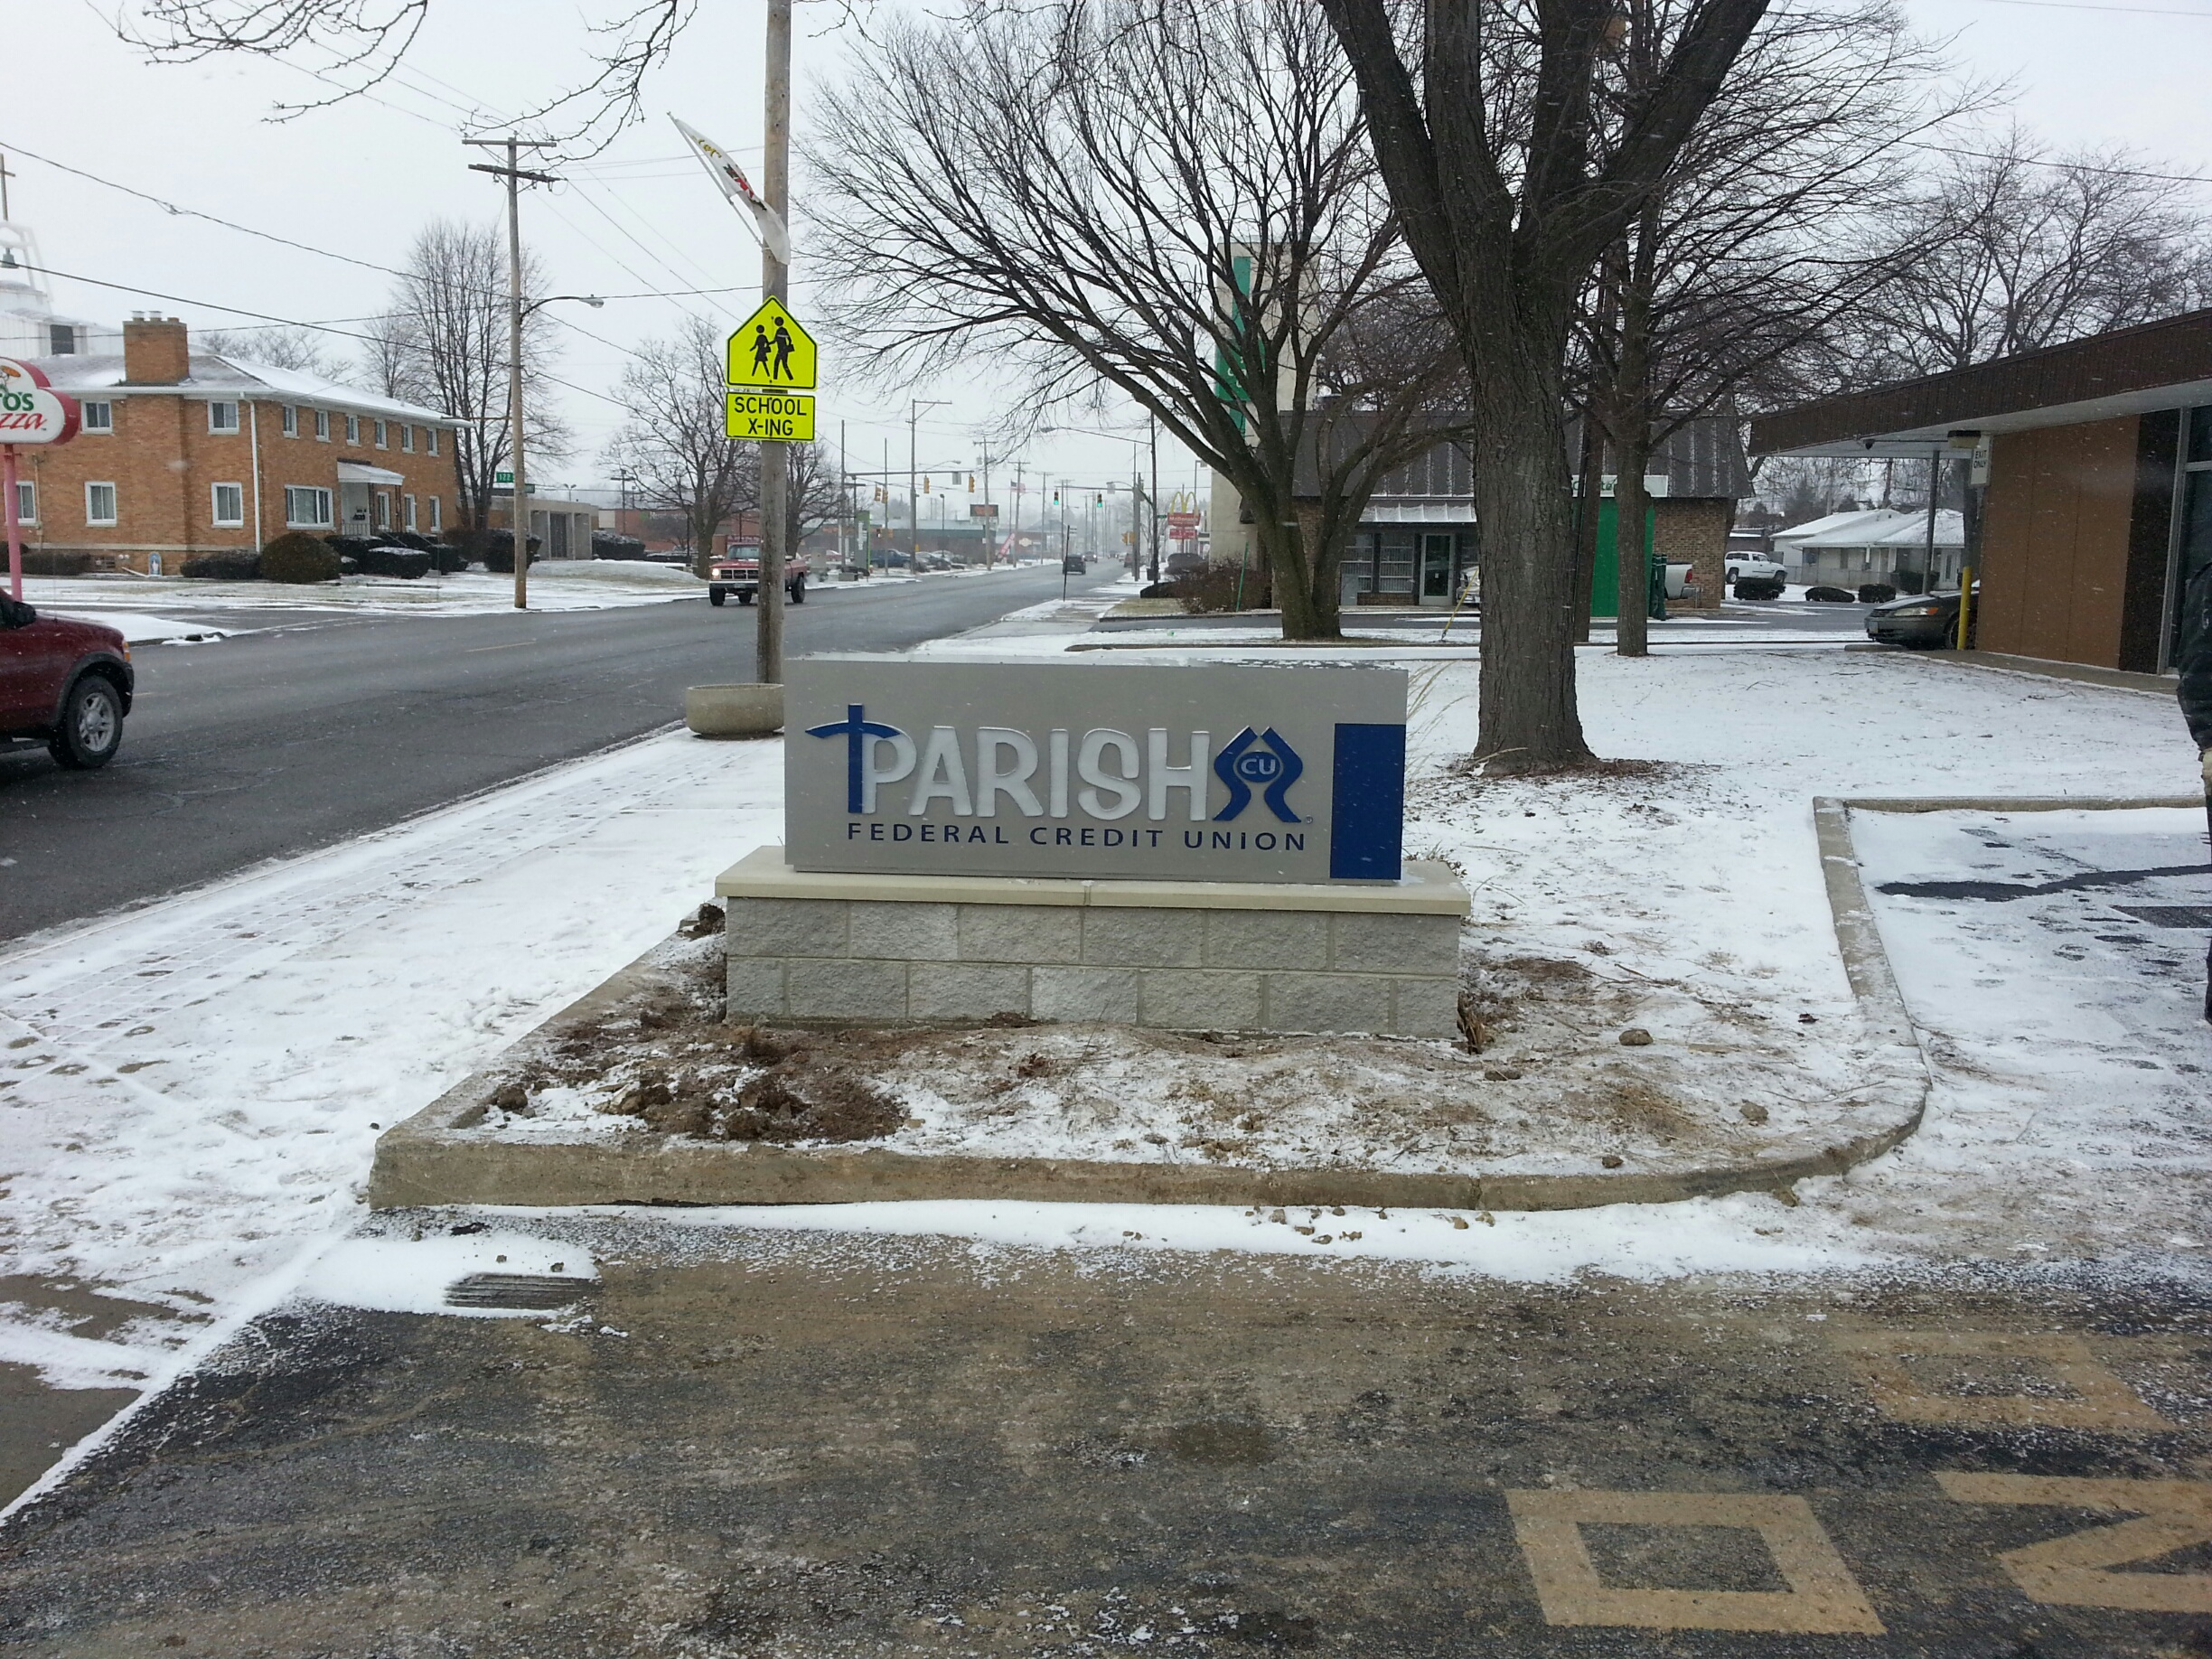 Parish Federal Credit Union